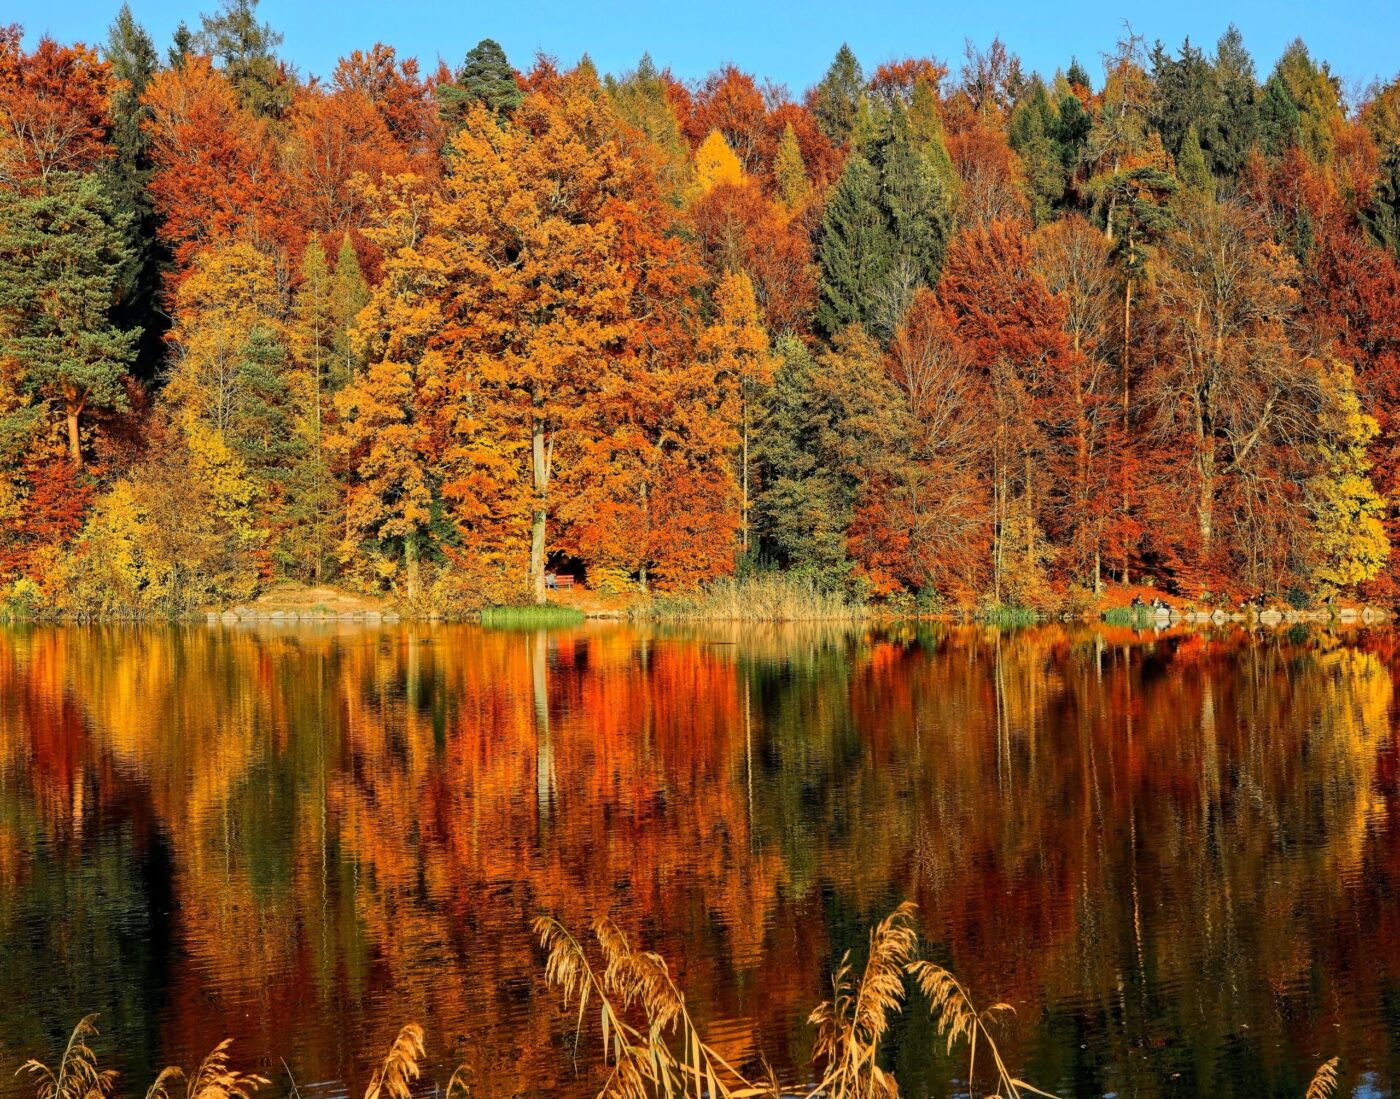 10 Things You Didn't Know About Autumn